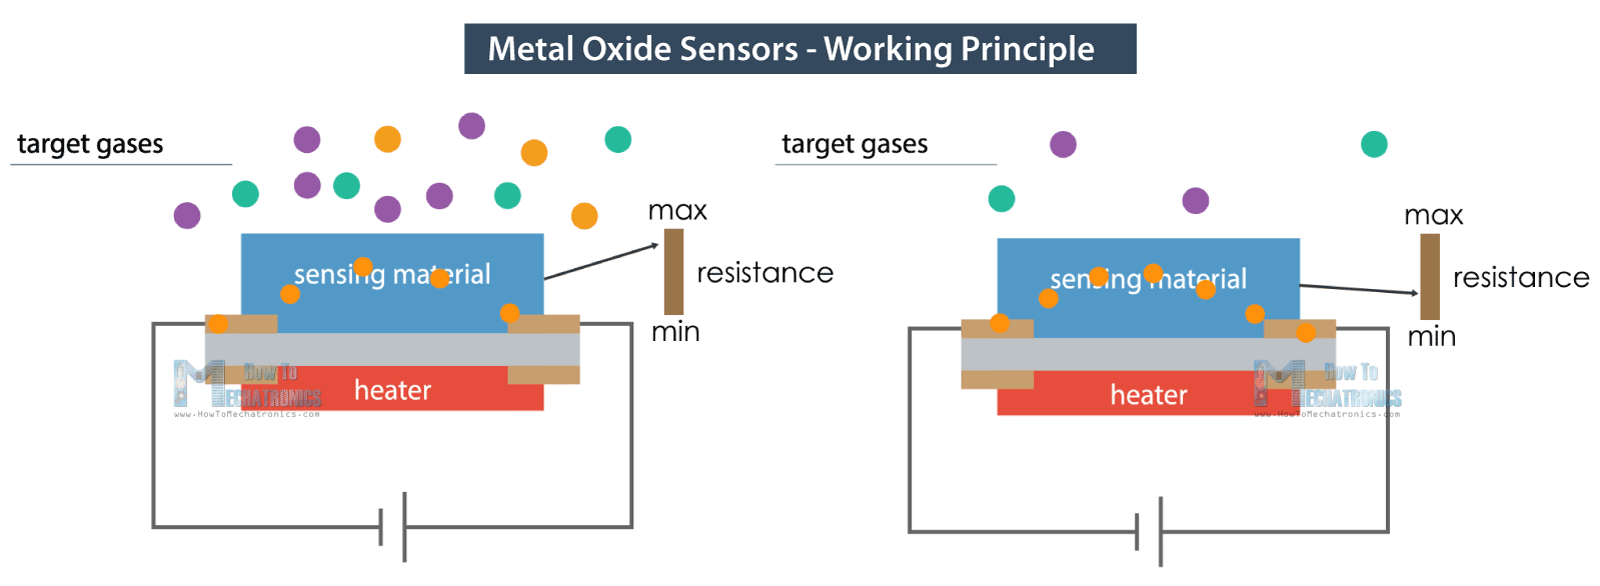 How Metal Oxide Sensors Work